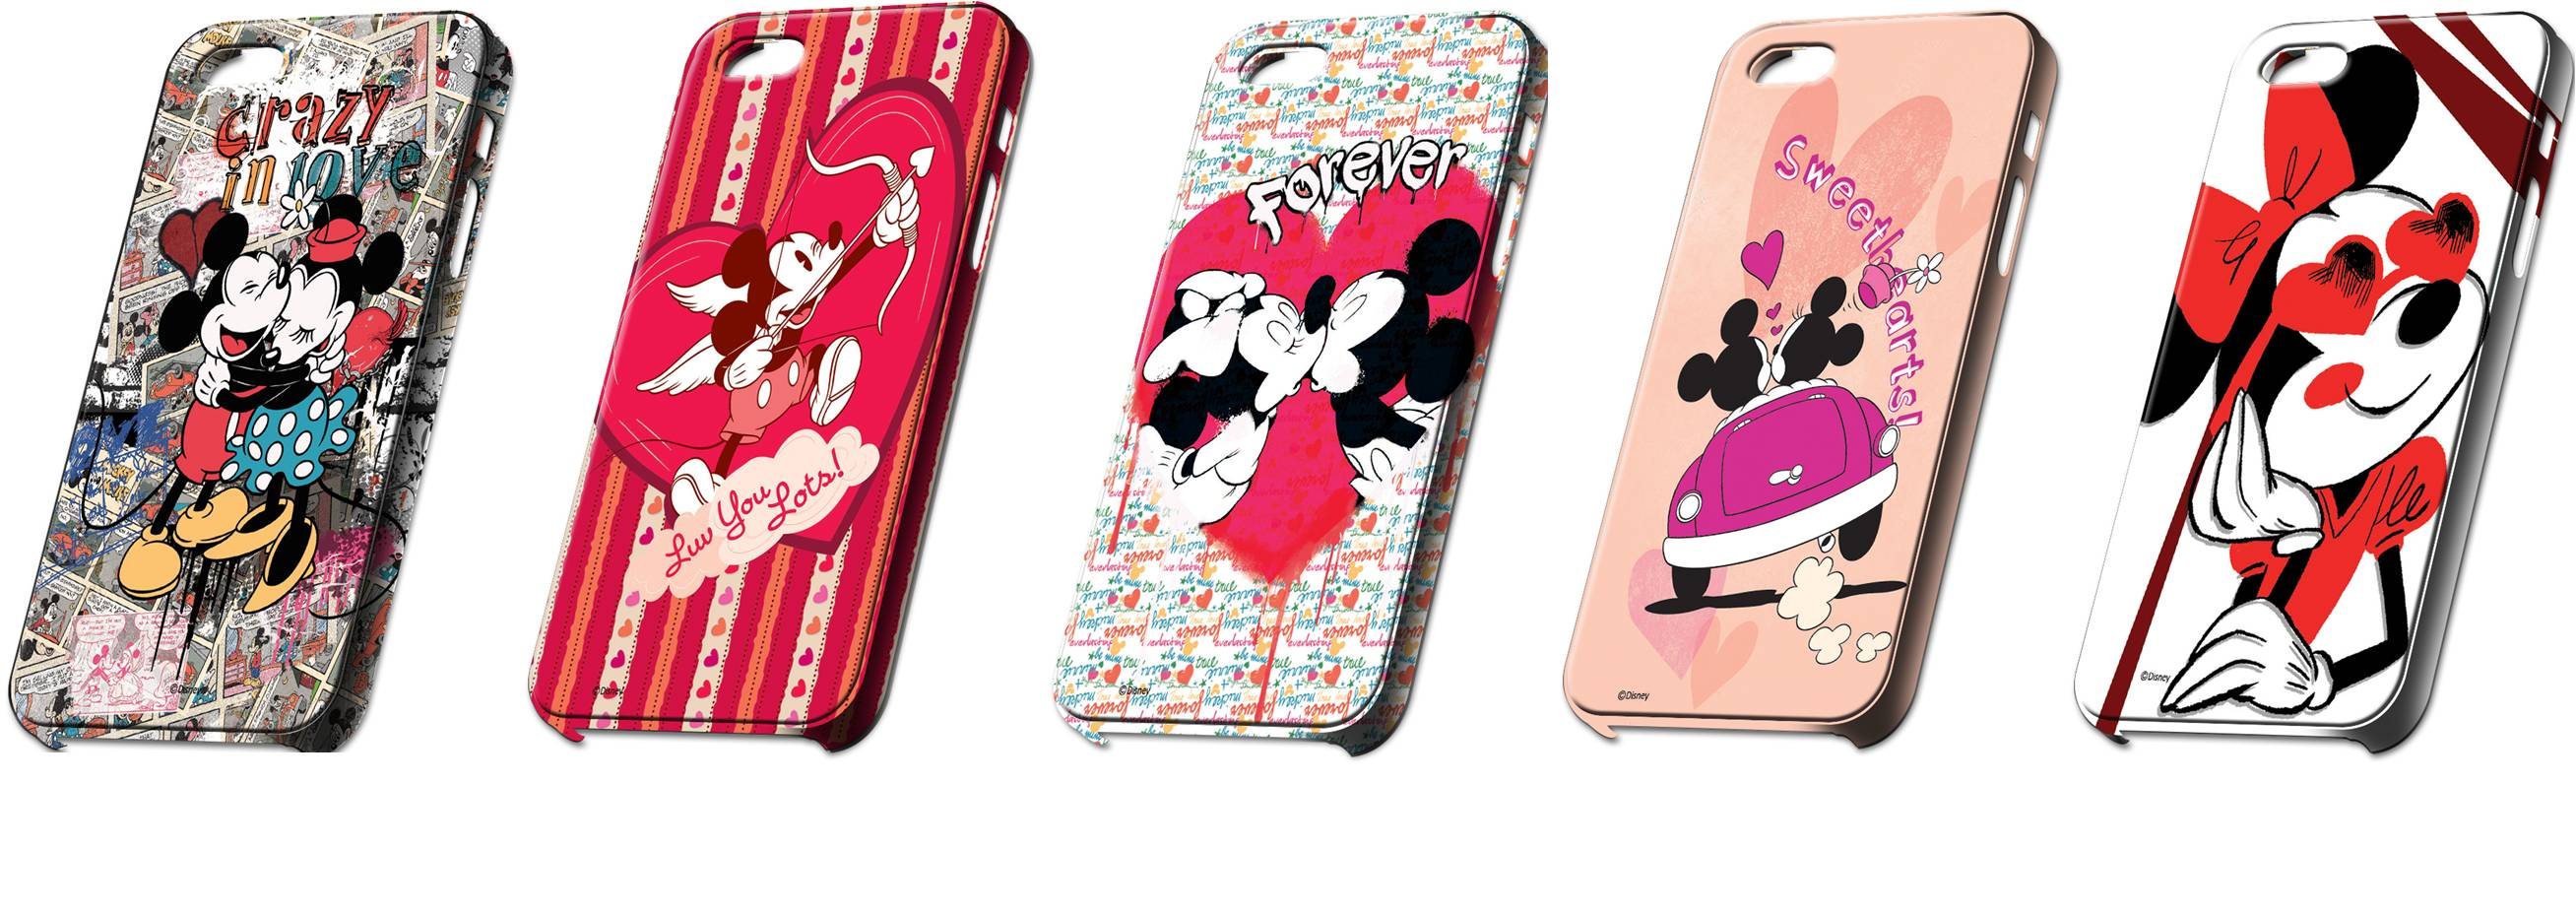 Disney's Mickey & Minnie Valentine Phone Covers on Macmerise.com Rs 550-850